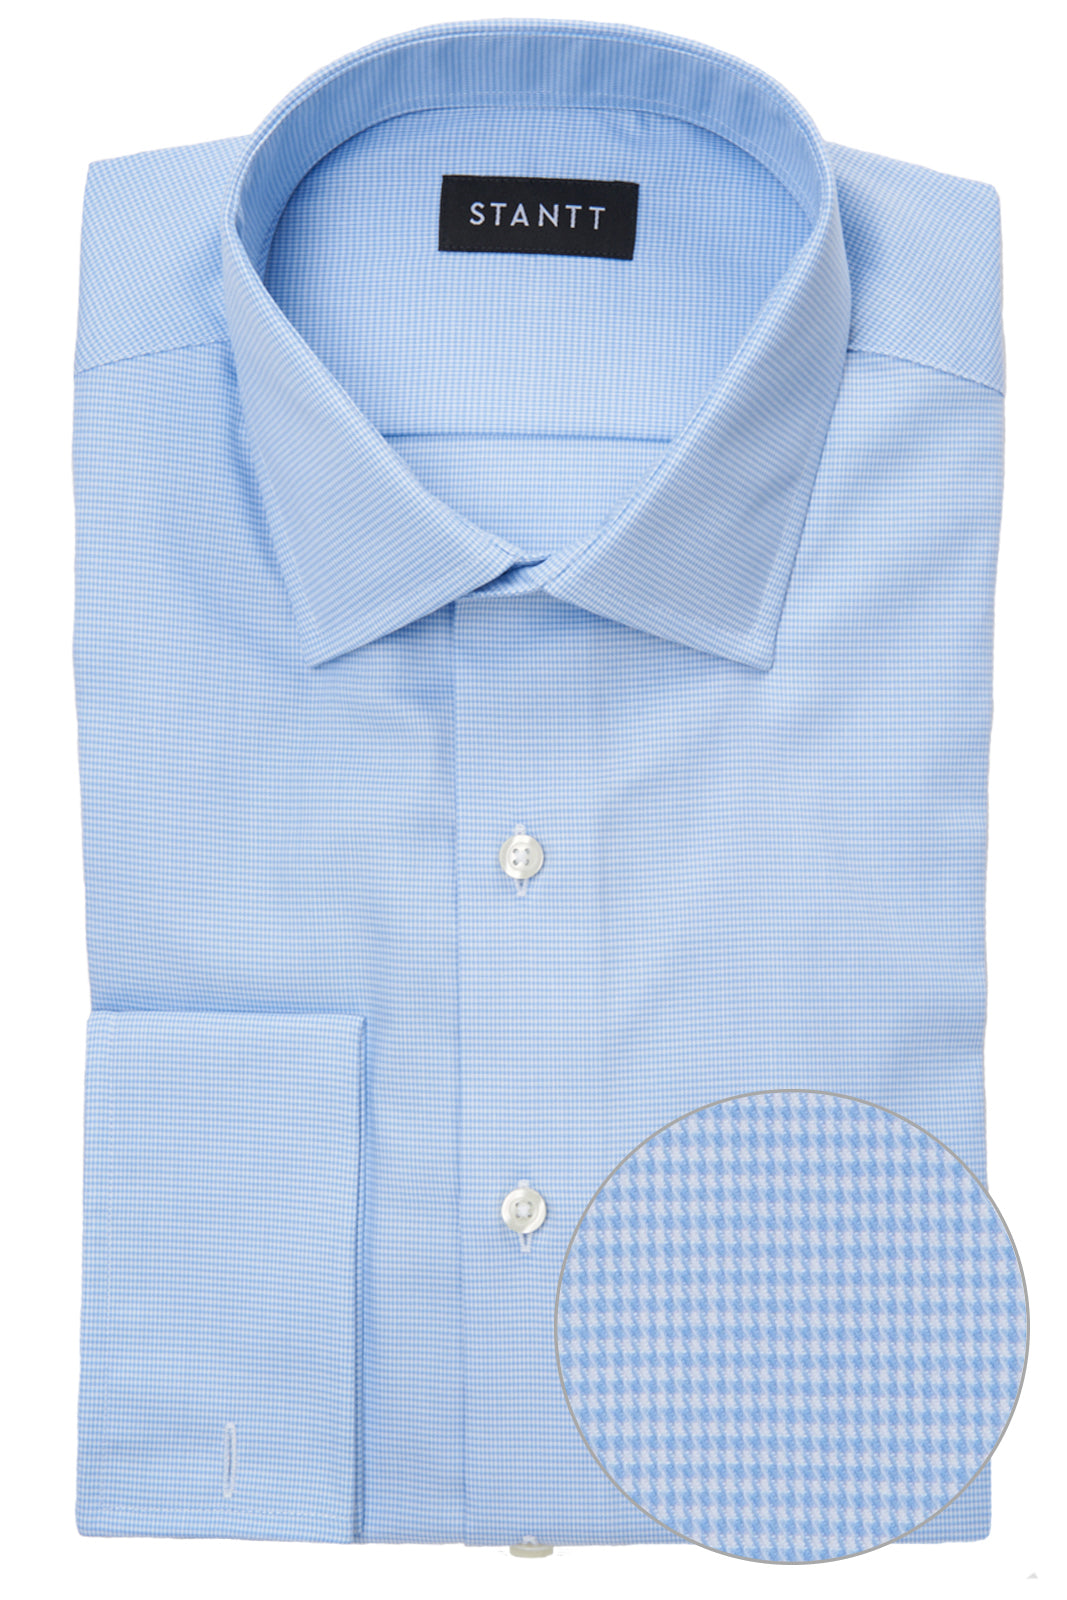 Wrinkle-Resistant Light Blue Houndstooth: Modified-Spread Collar, French Cuff